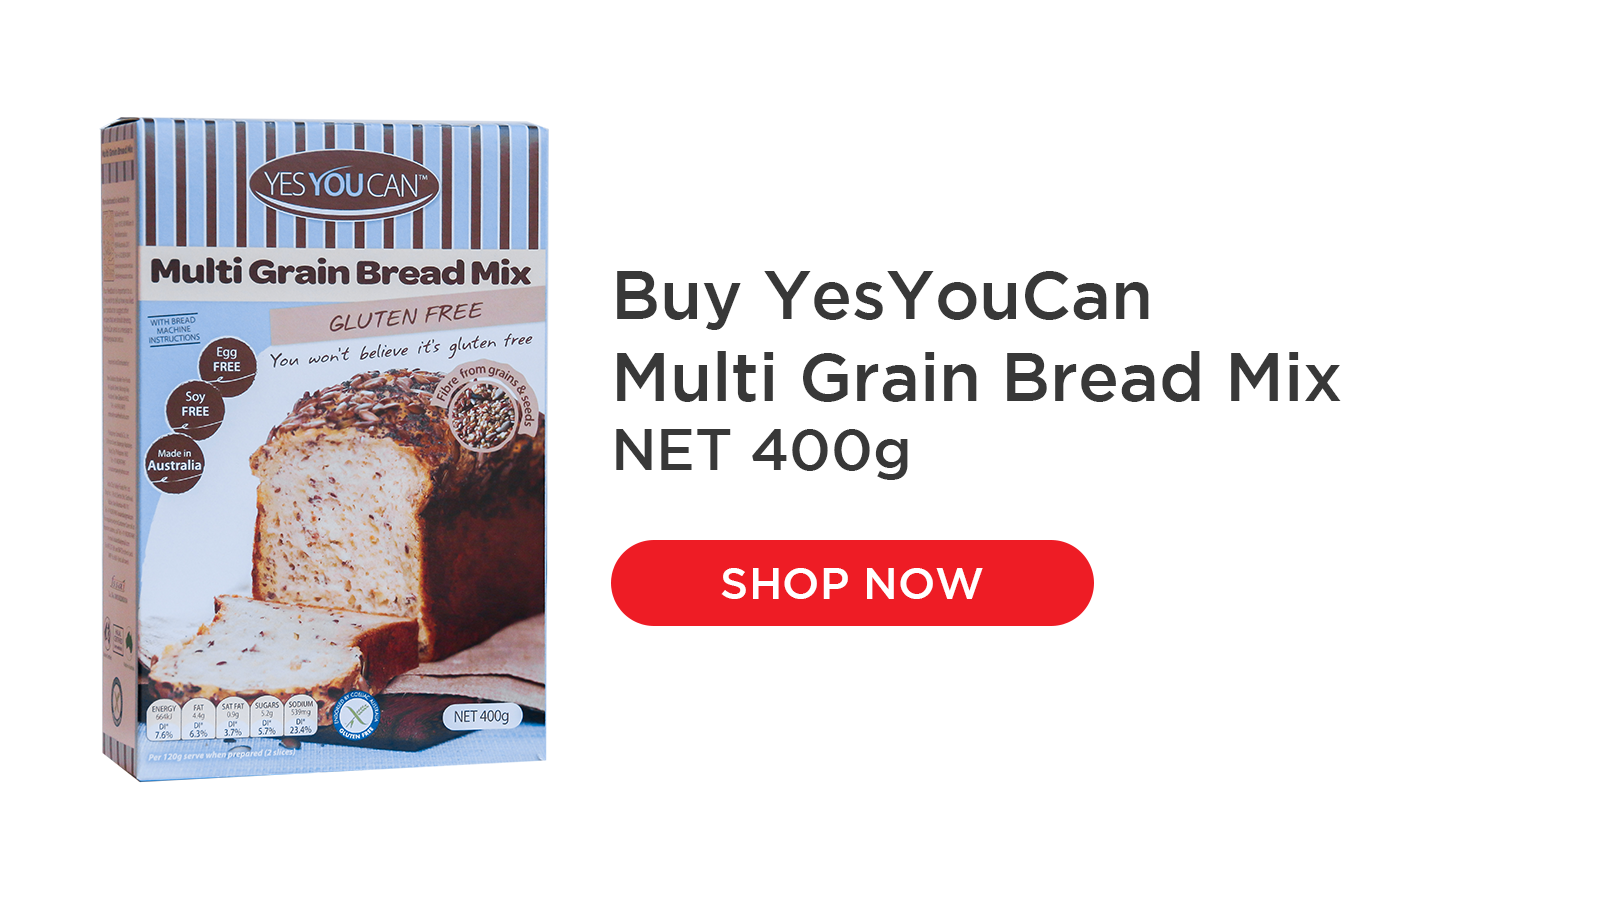 yesyoucan multi grain bread mix vegetarian baking gluten free